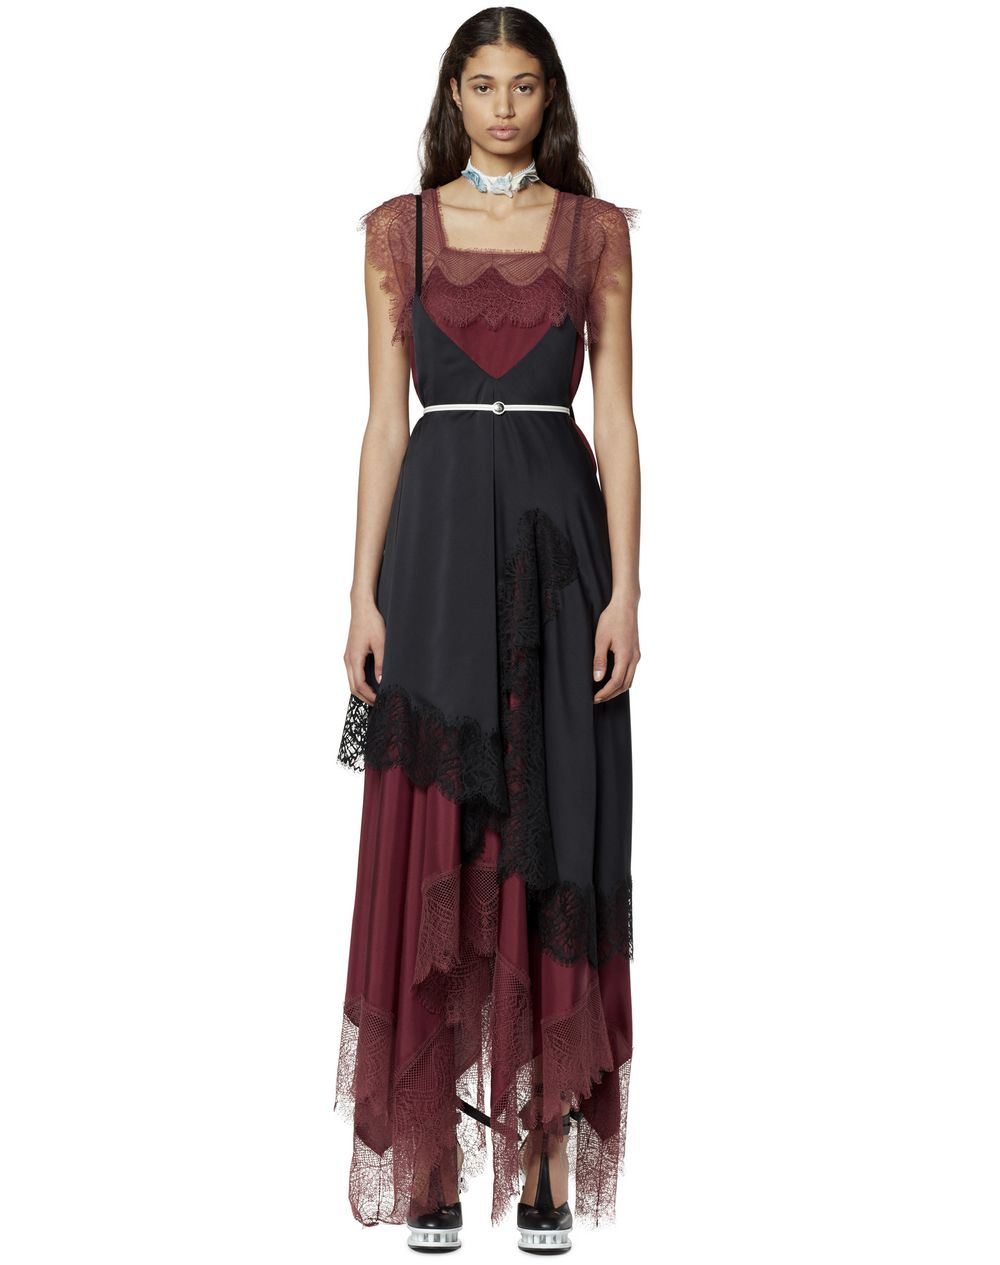 LONG ASYMMETRICAL LACE DRESS - Lanvin